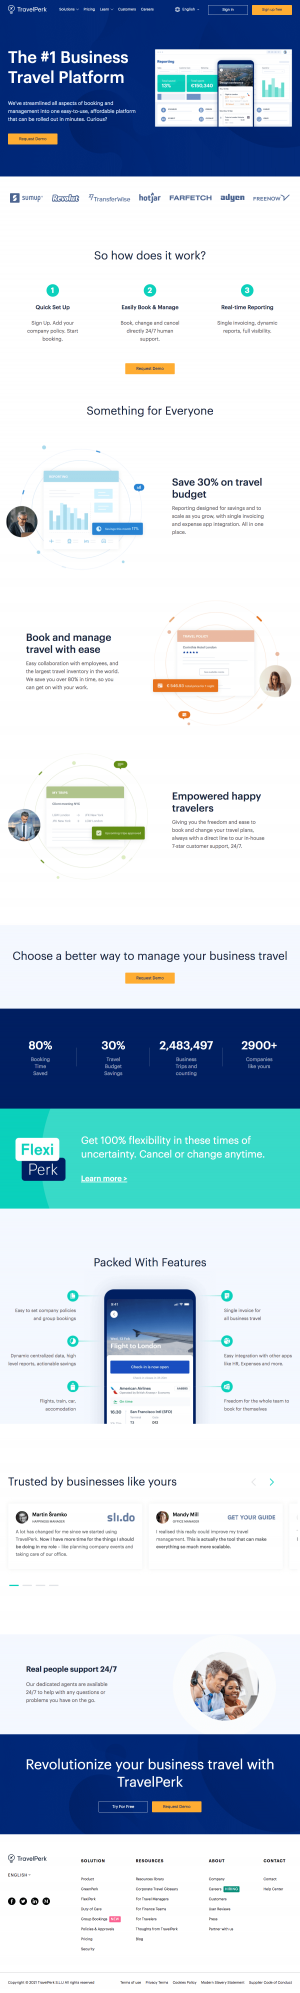 TravelPerk – Homepage